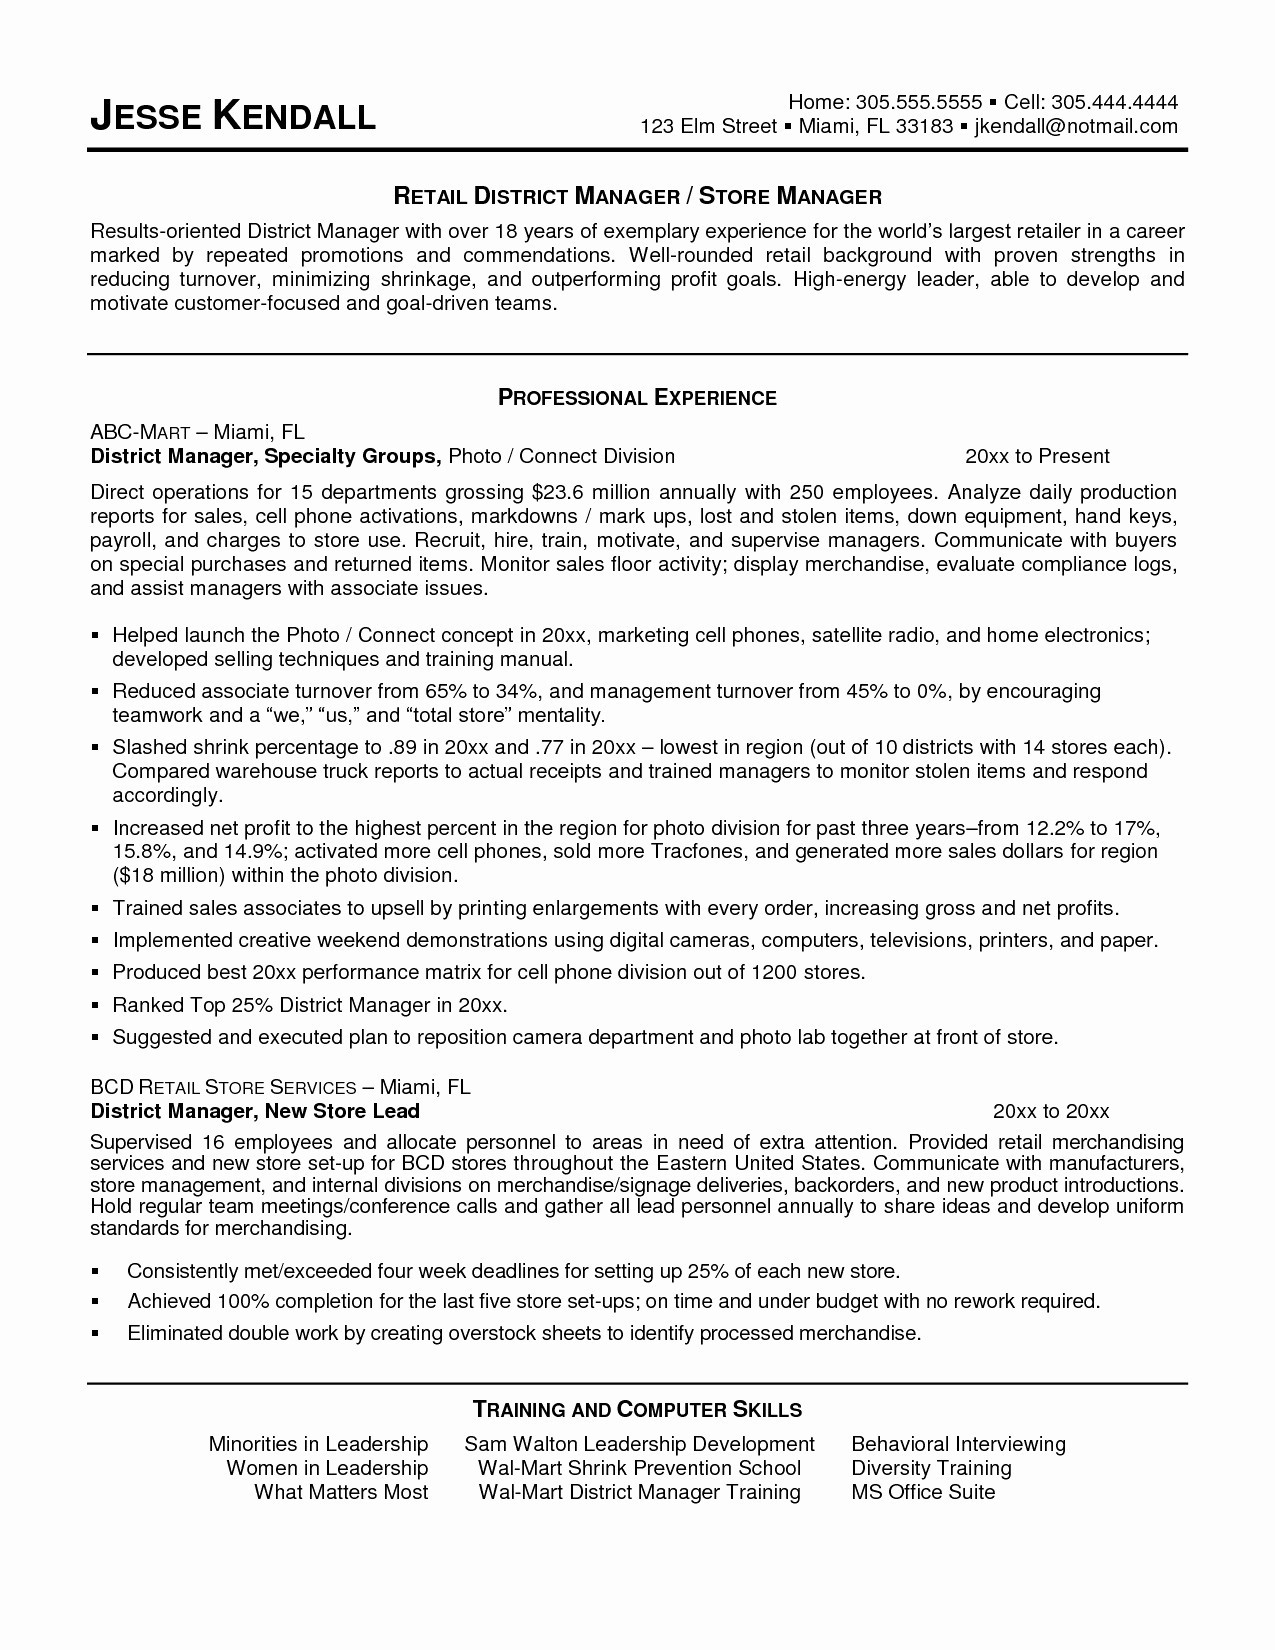 Hints for Good Resumes - Hints for A Good Resume Best format A Resume Fresh Chemistry